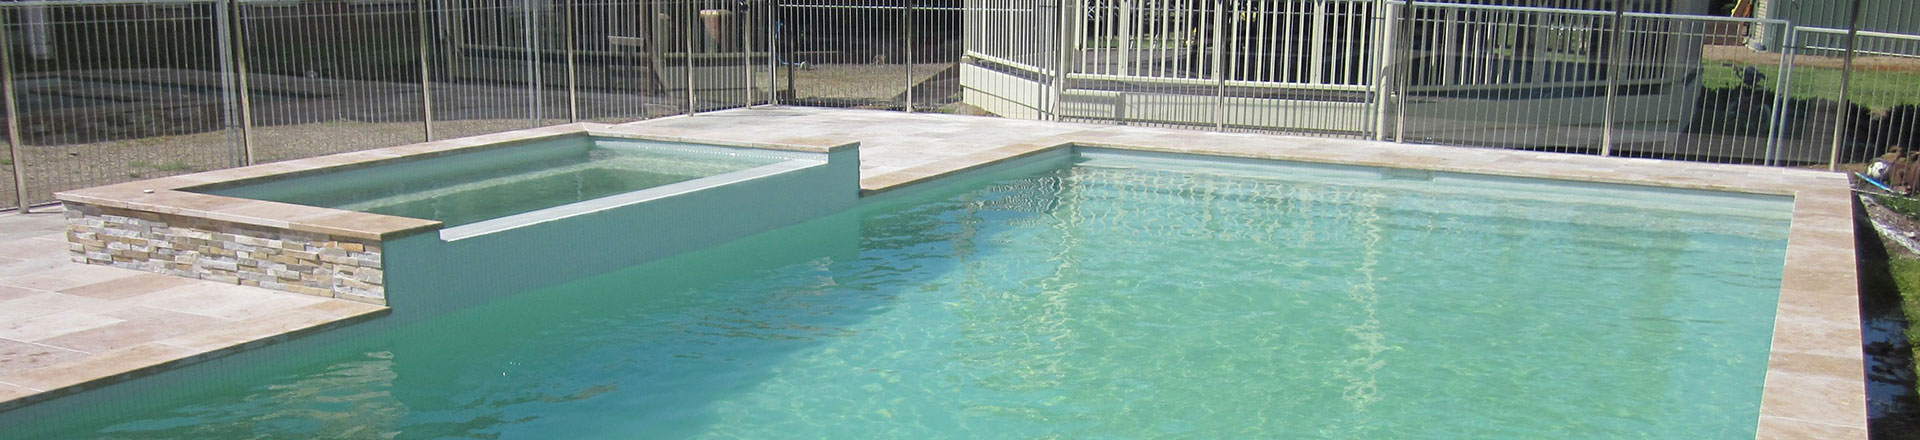 Request a pool quote